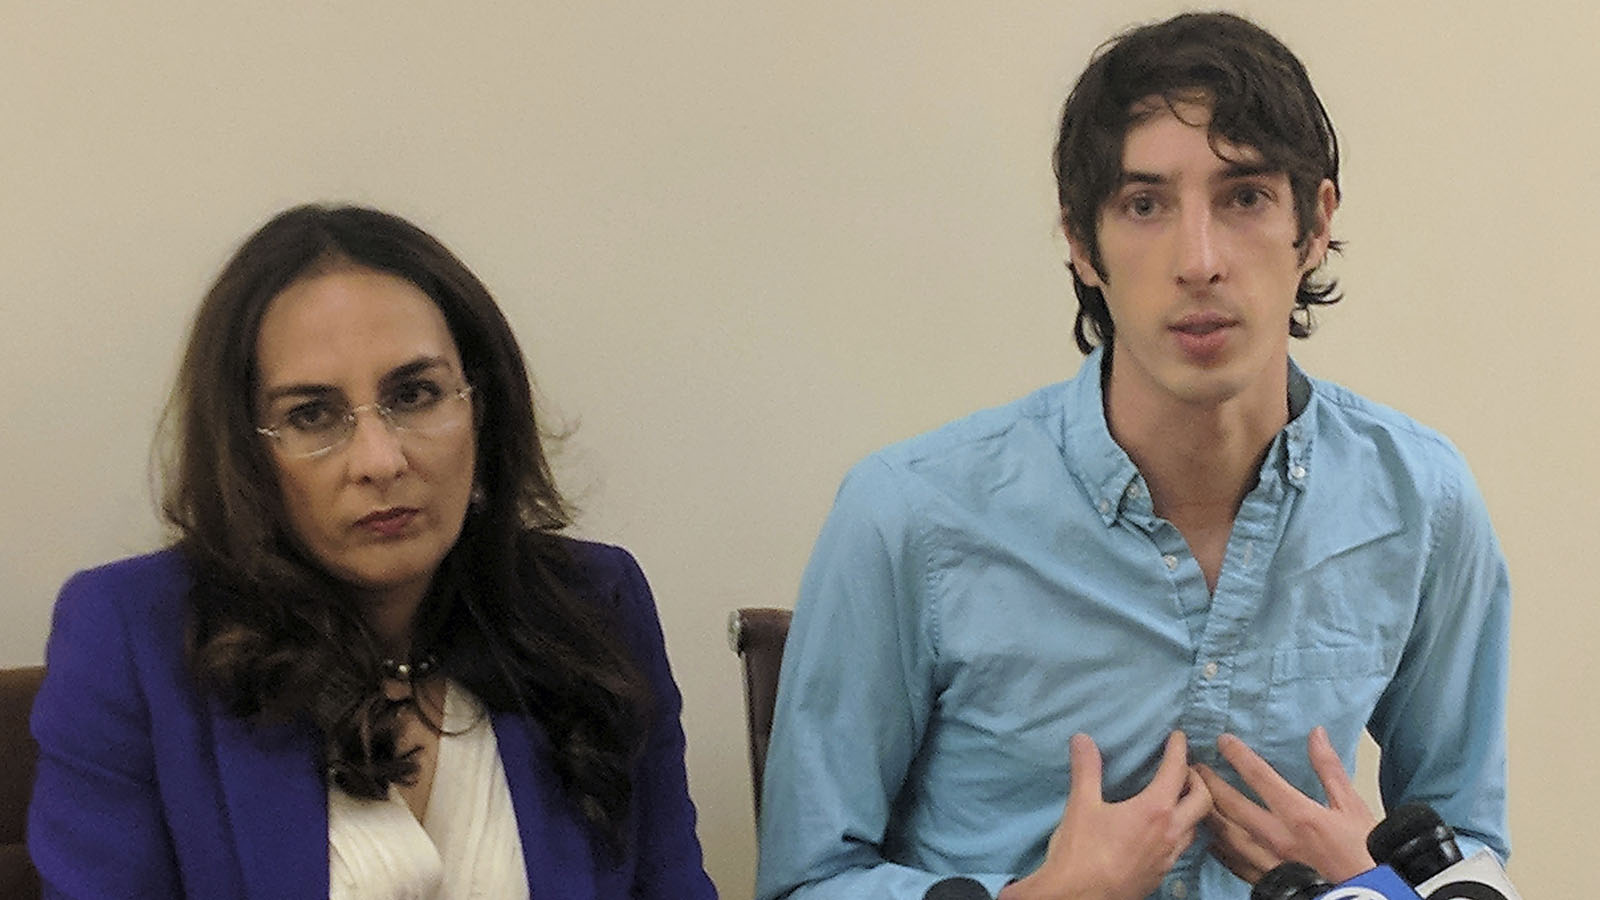 James Damore,Harmeet Dhillon